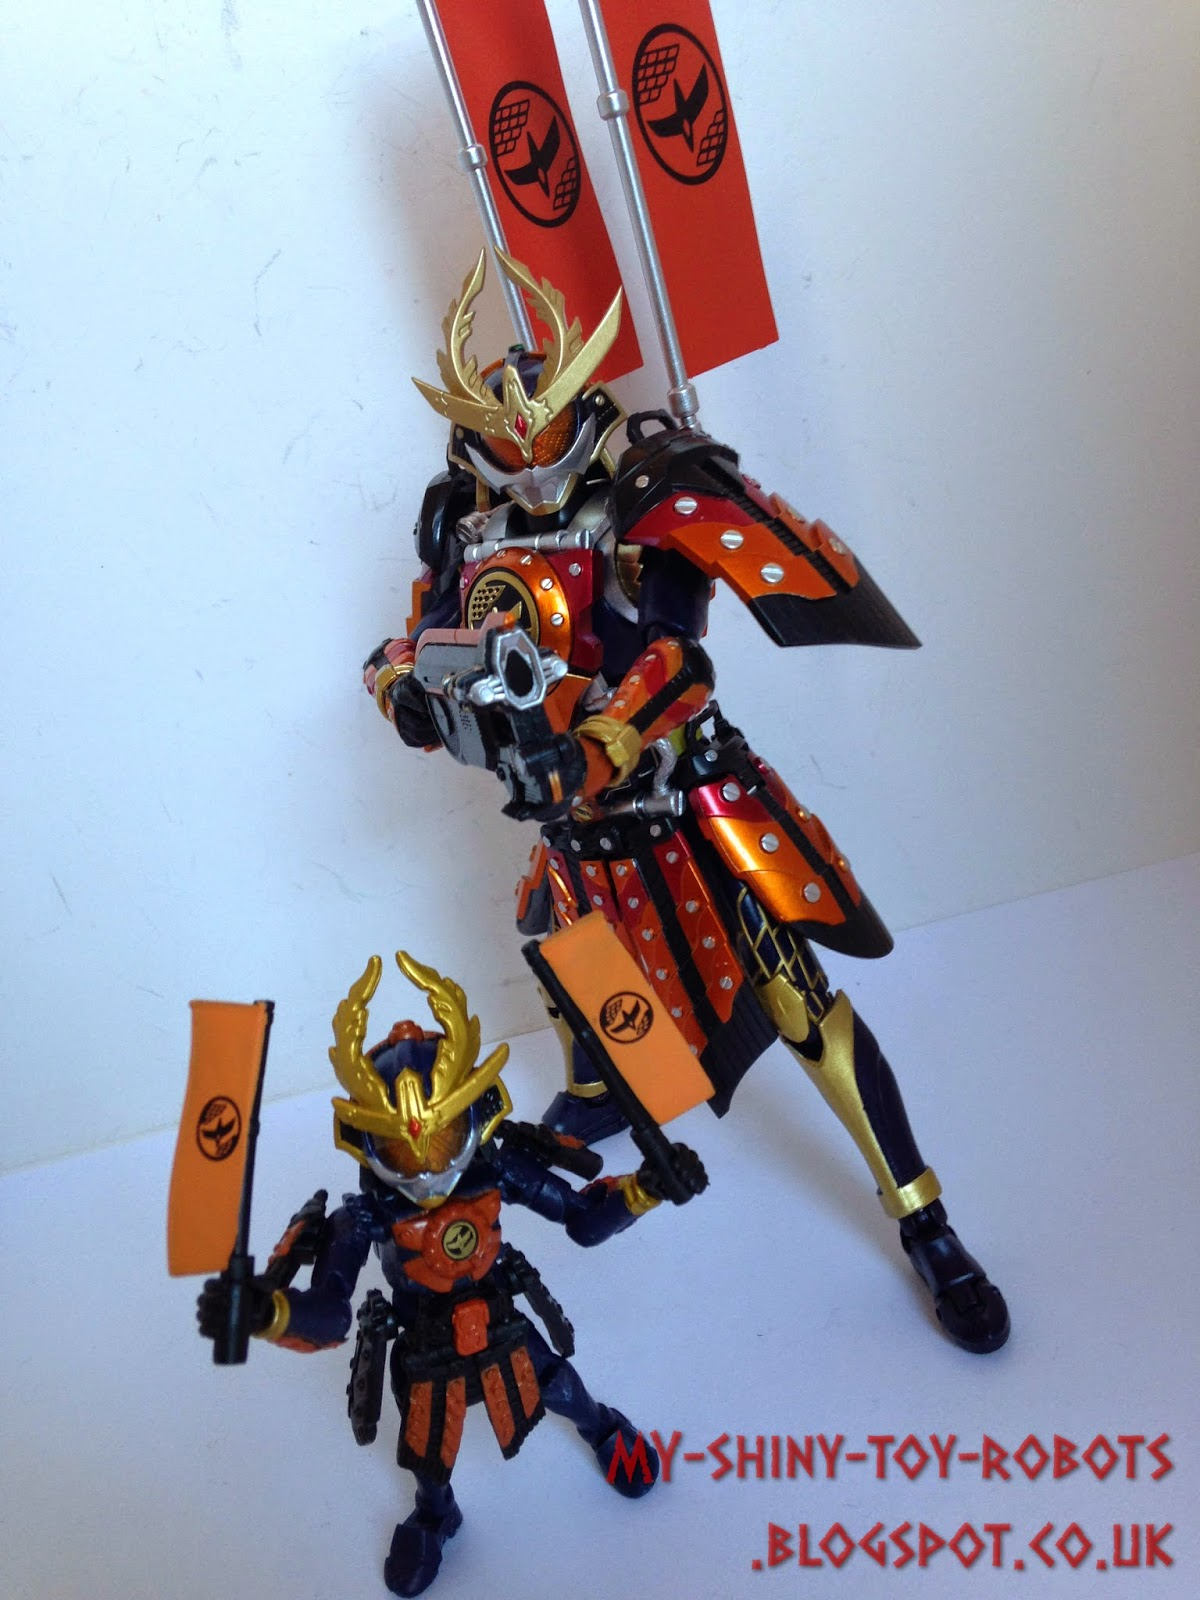 With Figuarts Kachidoki Arms